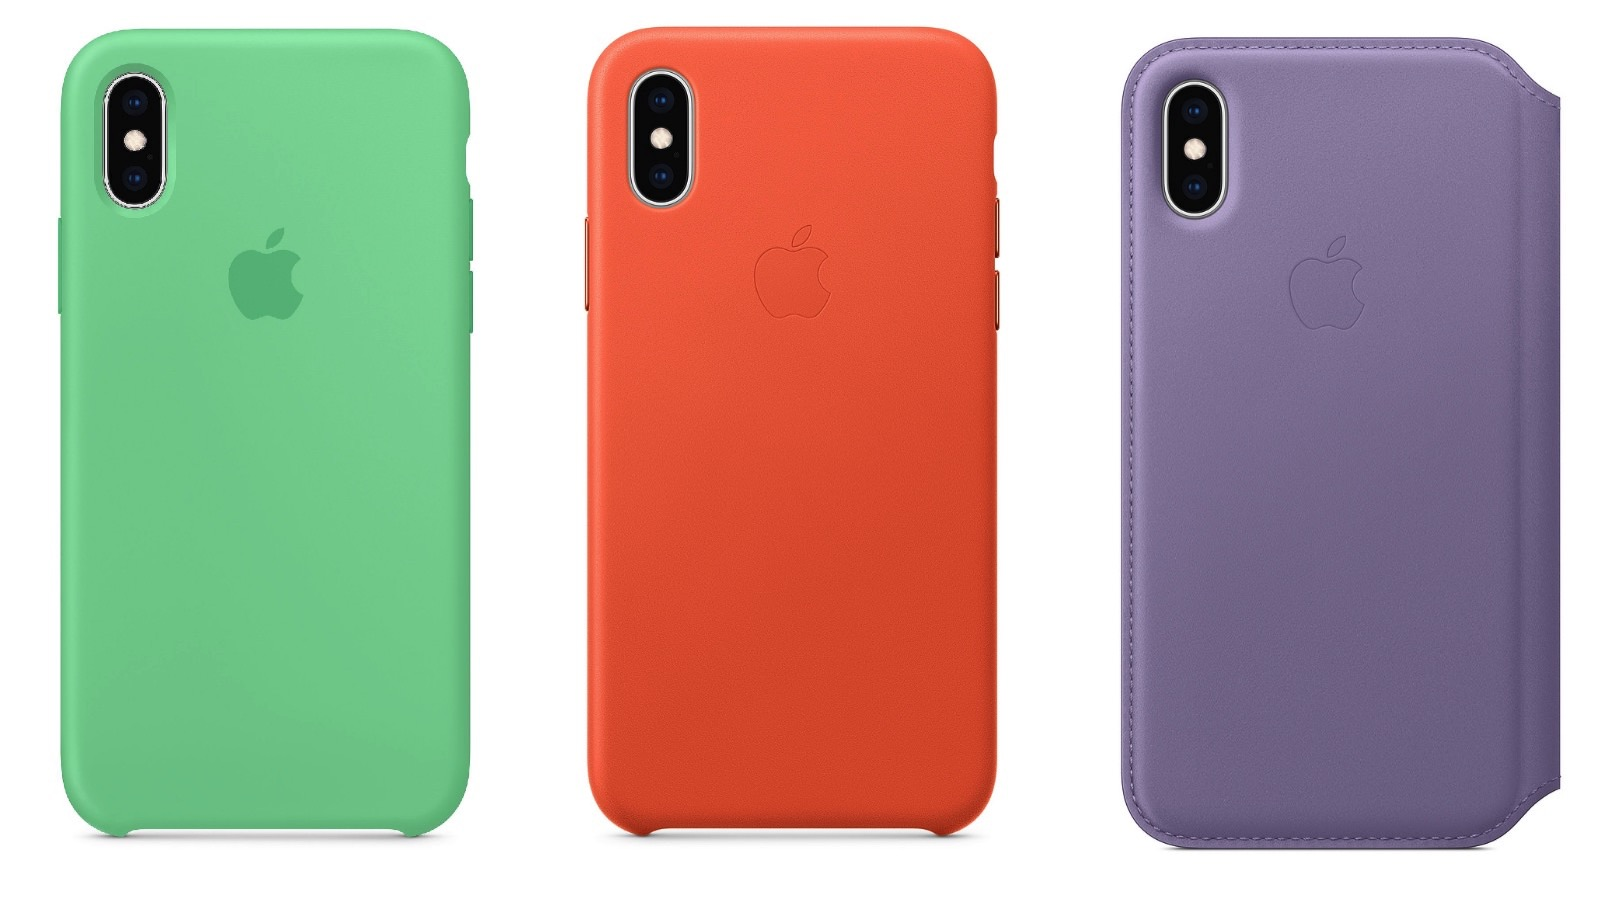 New Spring colors for iPhone